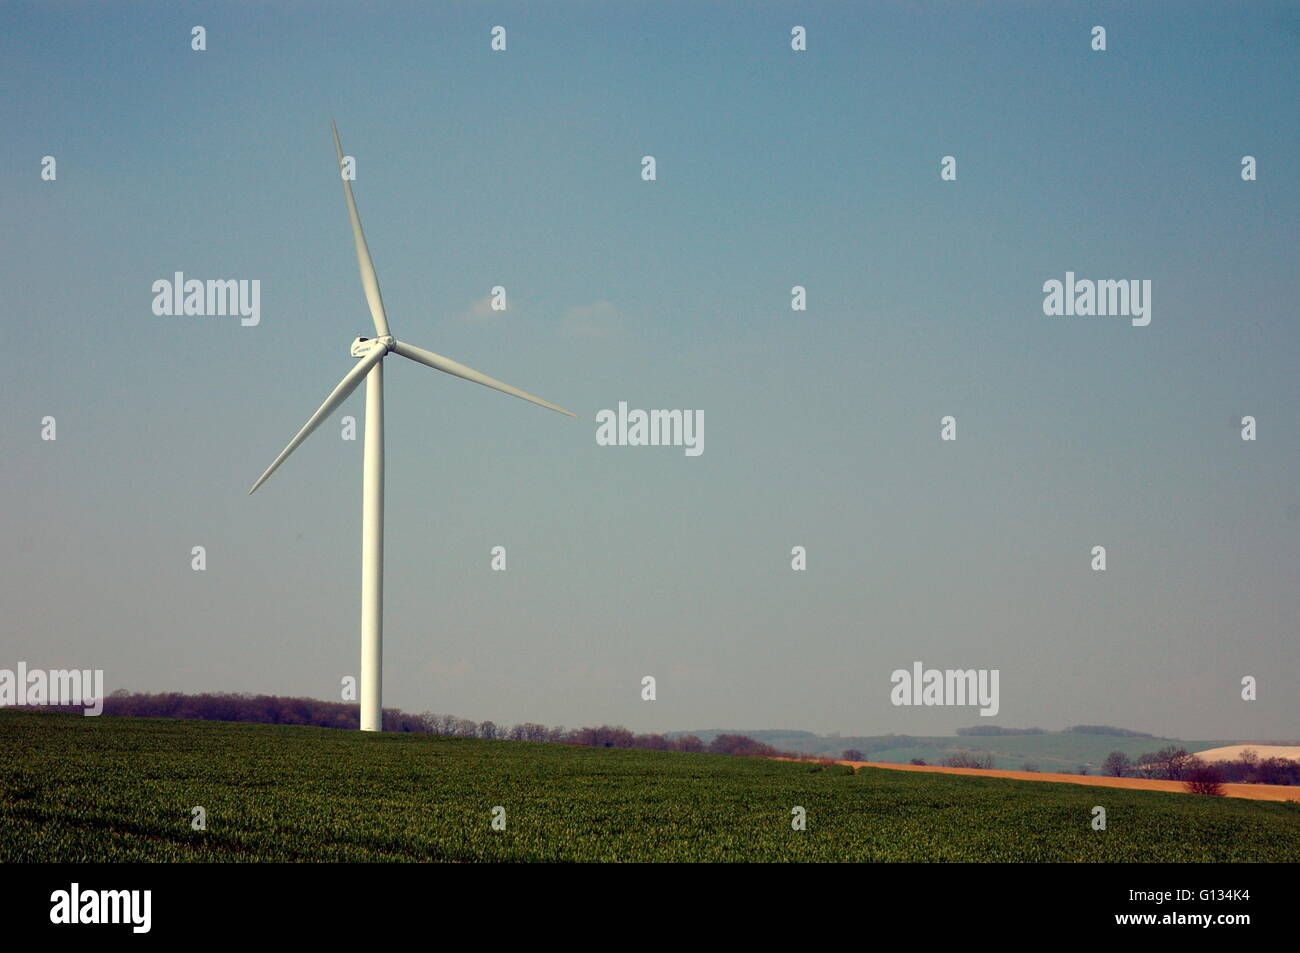 AJAXNETPHOTO - 2008, THE SOMME,FRANCE. - WIND FARM GENERATES ELECTRICTY FOR LOCAL VILLAGES. PHOTO:JONATHAN EASTLAND/AJAX - Stock Image